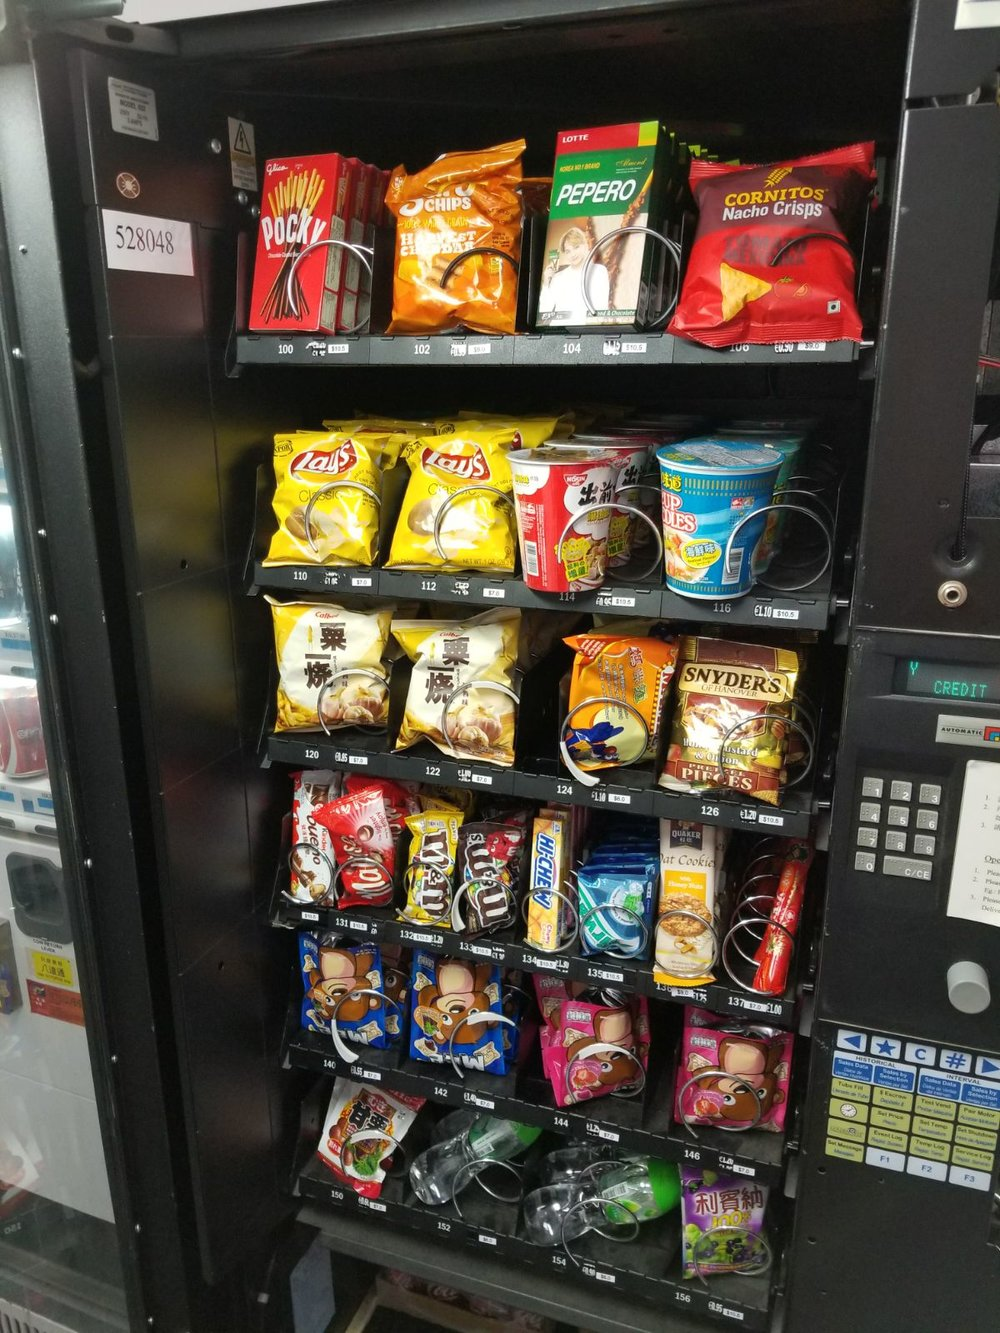 Freshup, vending machine hk, interactive, food, beverage, smart retail, convenient, vending services, professional, corporations, SPCA